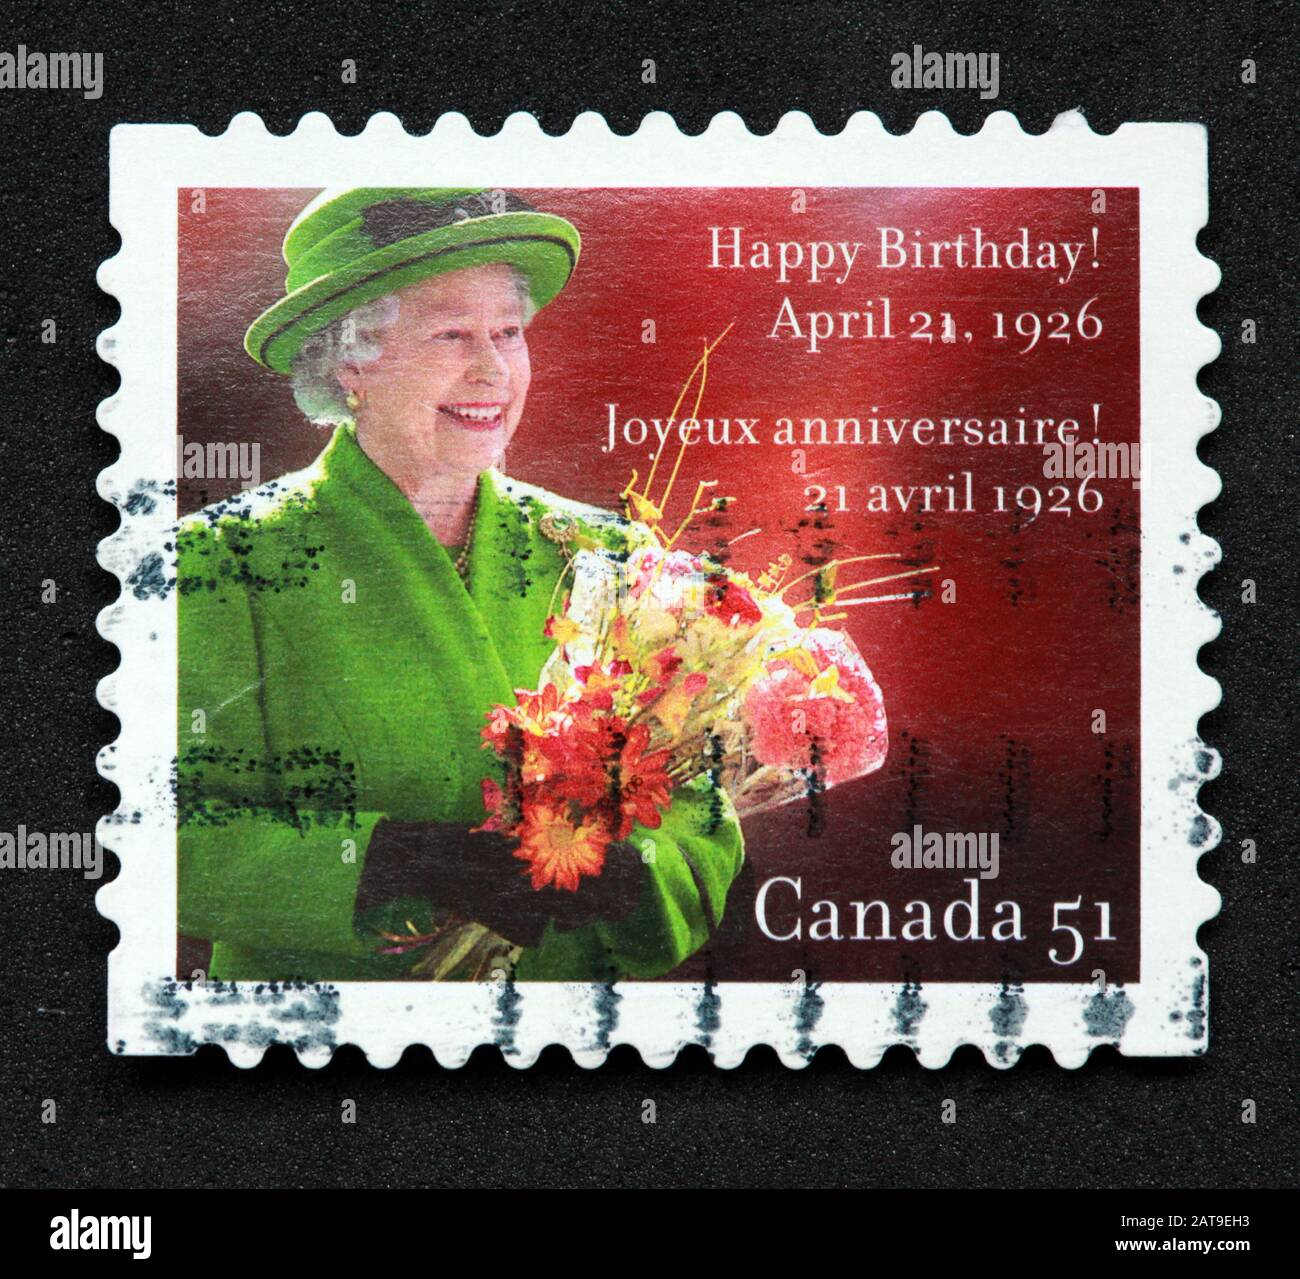 Dieses Stockfoto: Canadian Stamp, Canada Stamp, Canada Post, Useed Stamp, Canada 51, Happy Birthday Queen Elizabeth, 21. April 1926, Joyeux Anniversaire - 2AT9EH